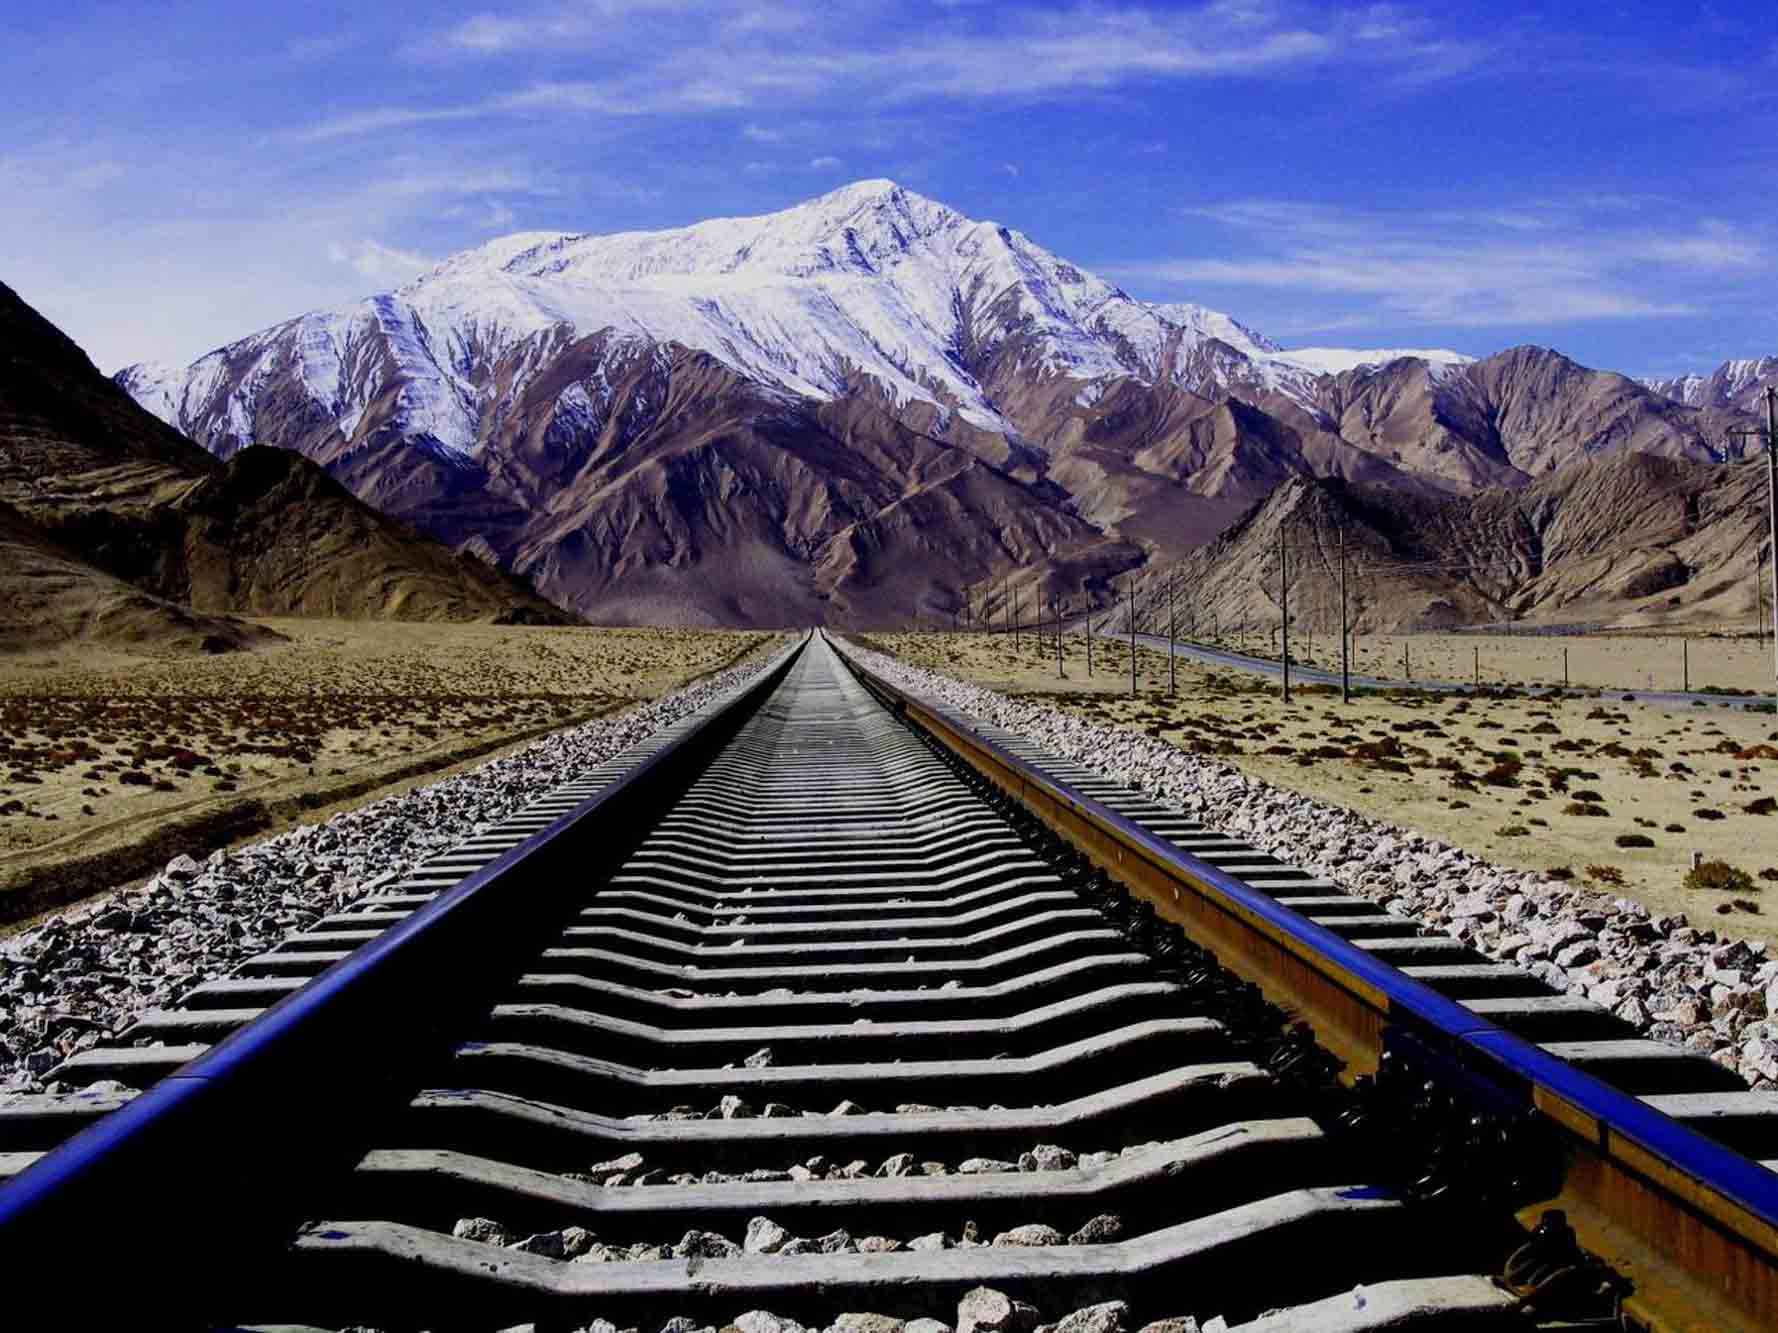 China looks to rail-link Tibet with Nepal by 2022